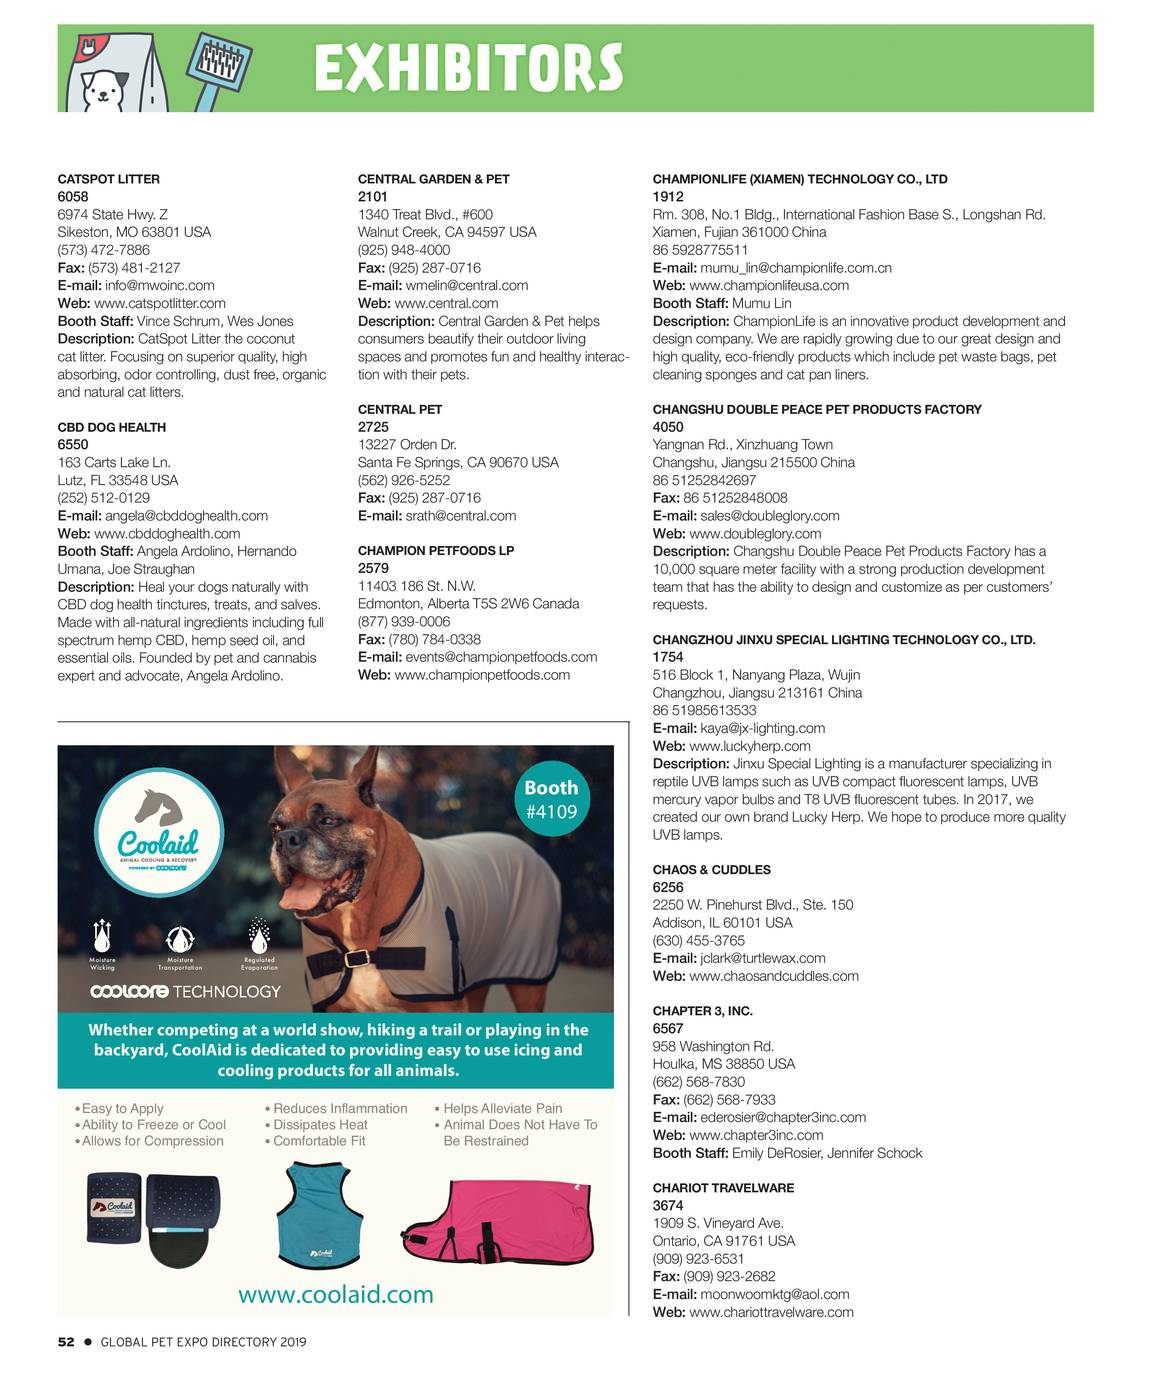 Pet Business - Global Pet Expo Show Directory 2019 - page 53